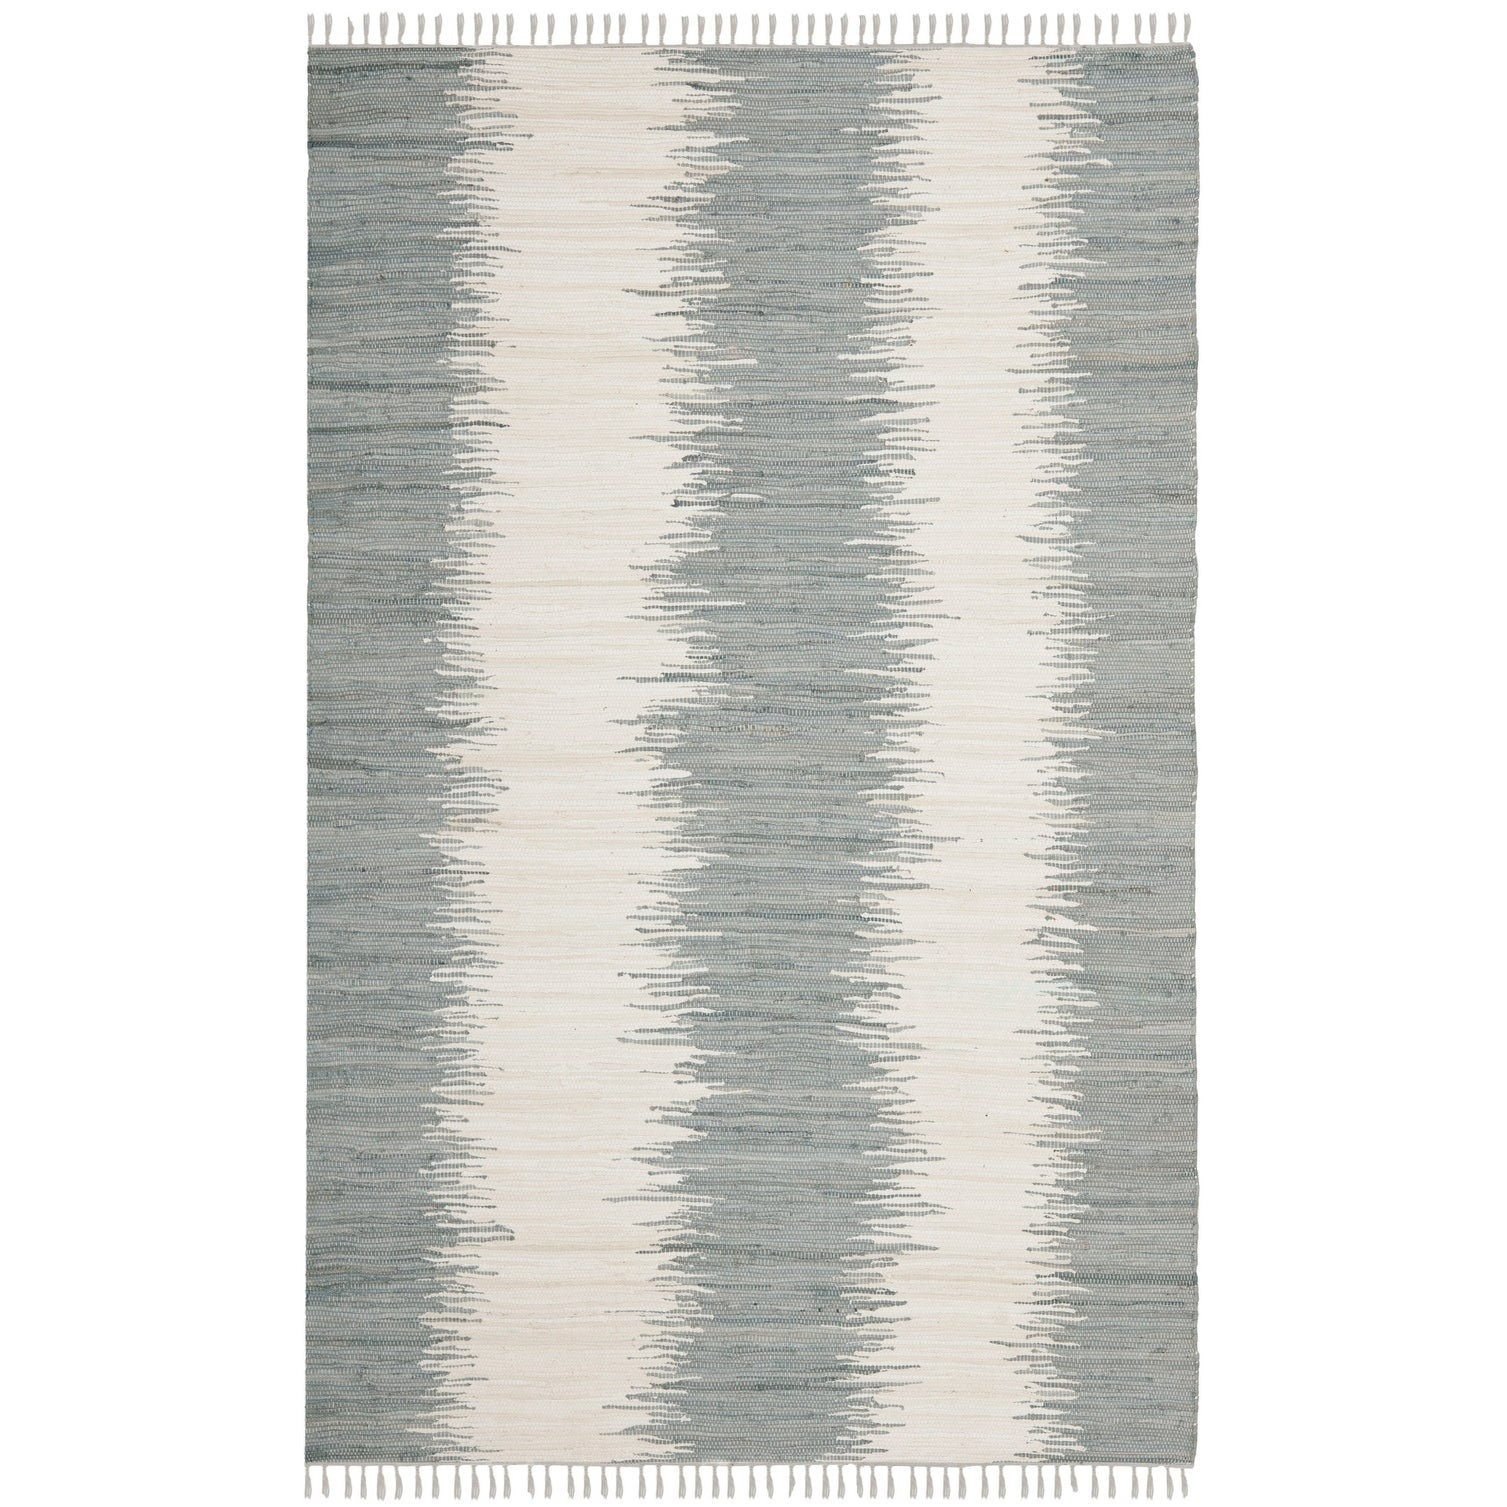 Grey Bohemian Hand Woven Cotton Area Rug 5x8